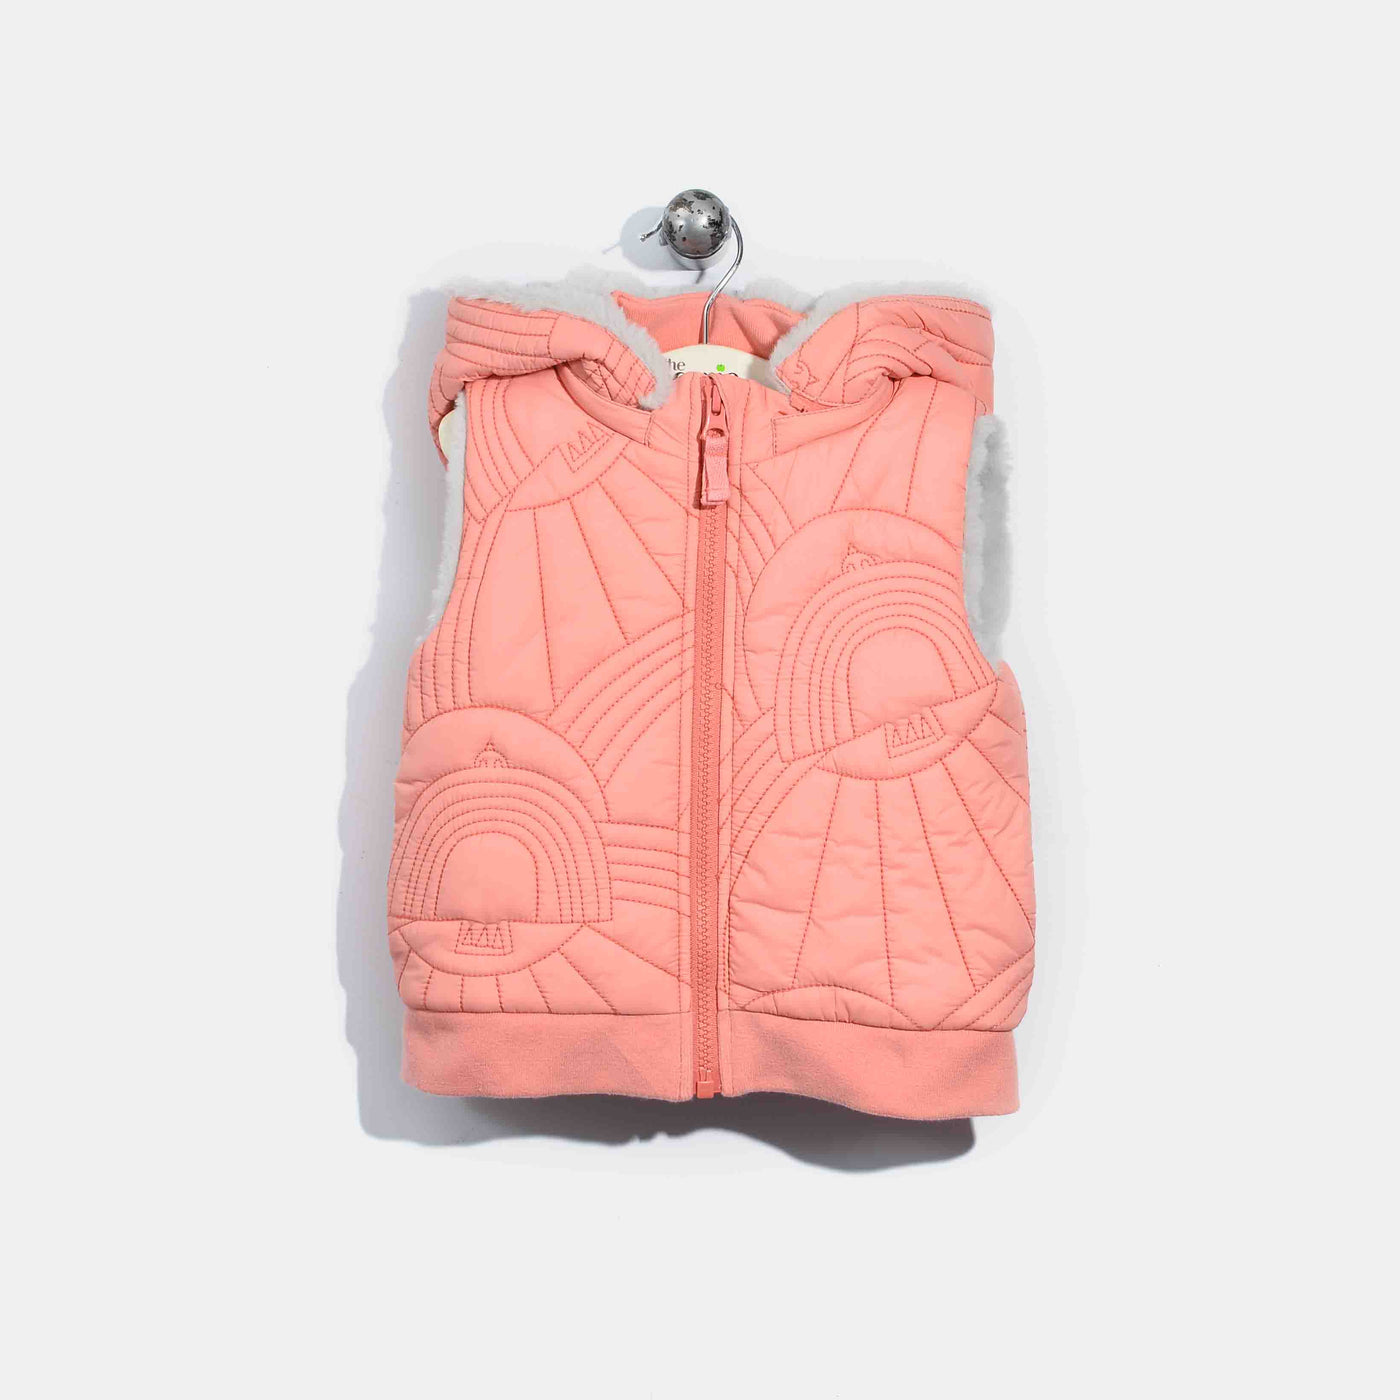 L-NORMAN-Dove Embroidered Gilet-Baby Girl-Pink